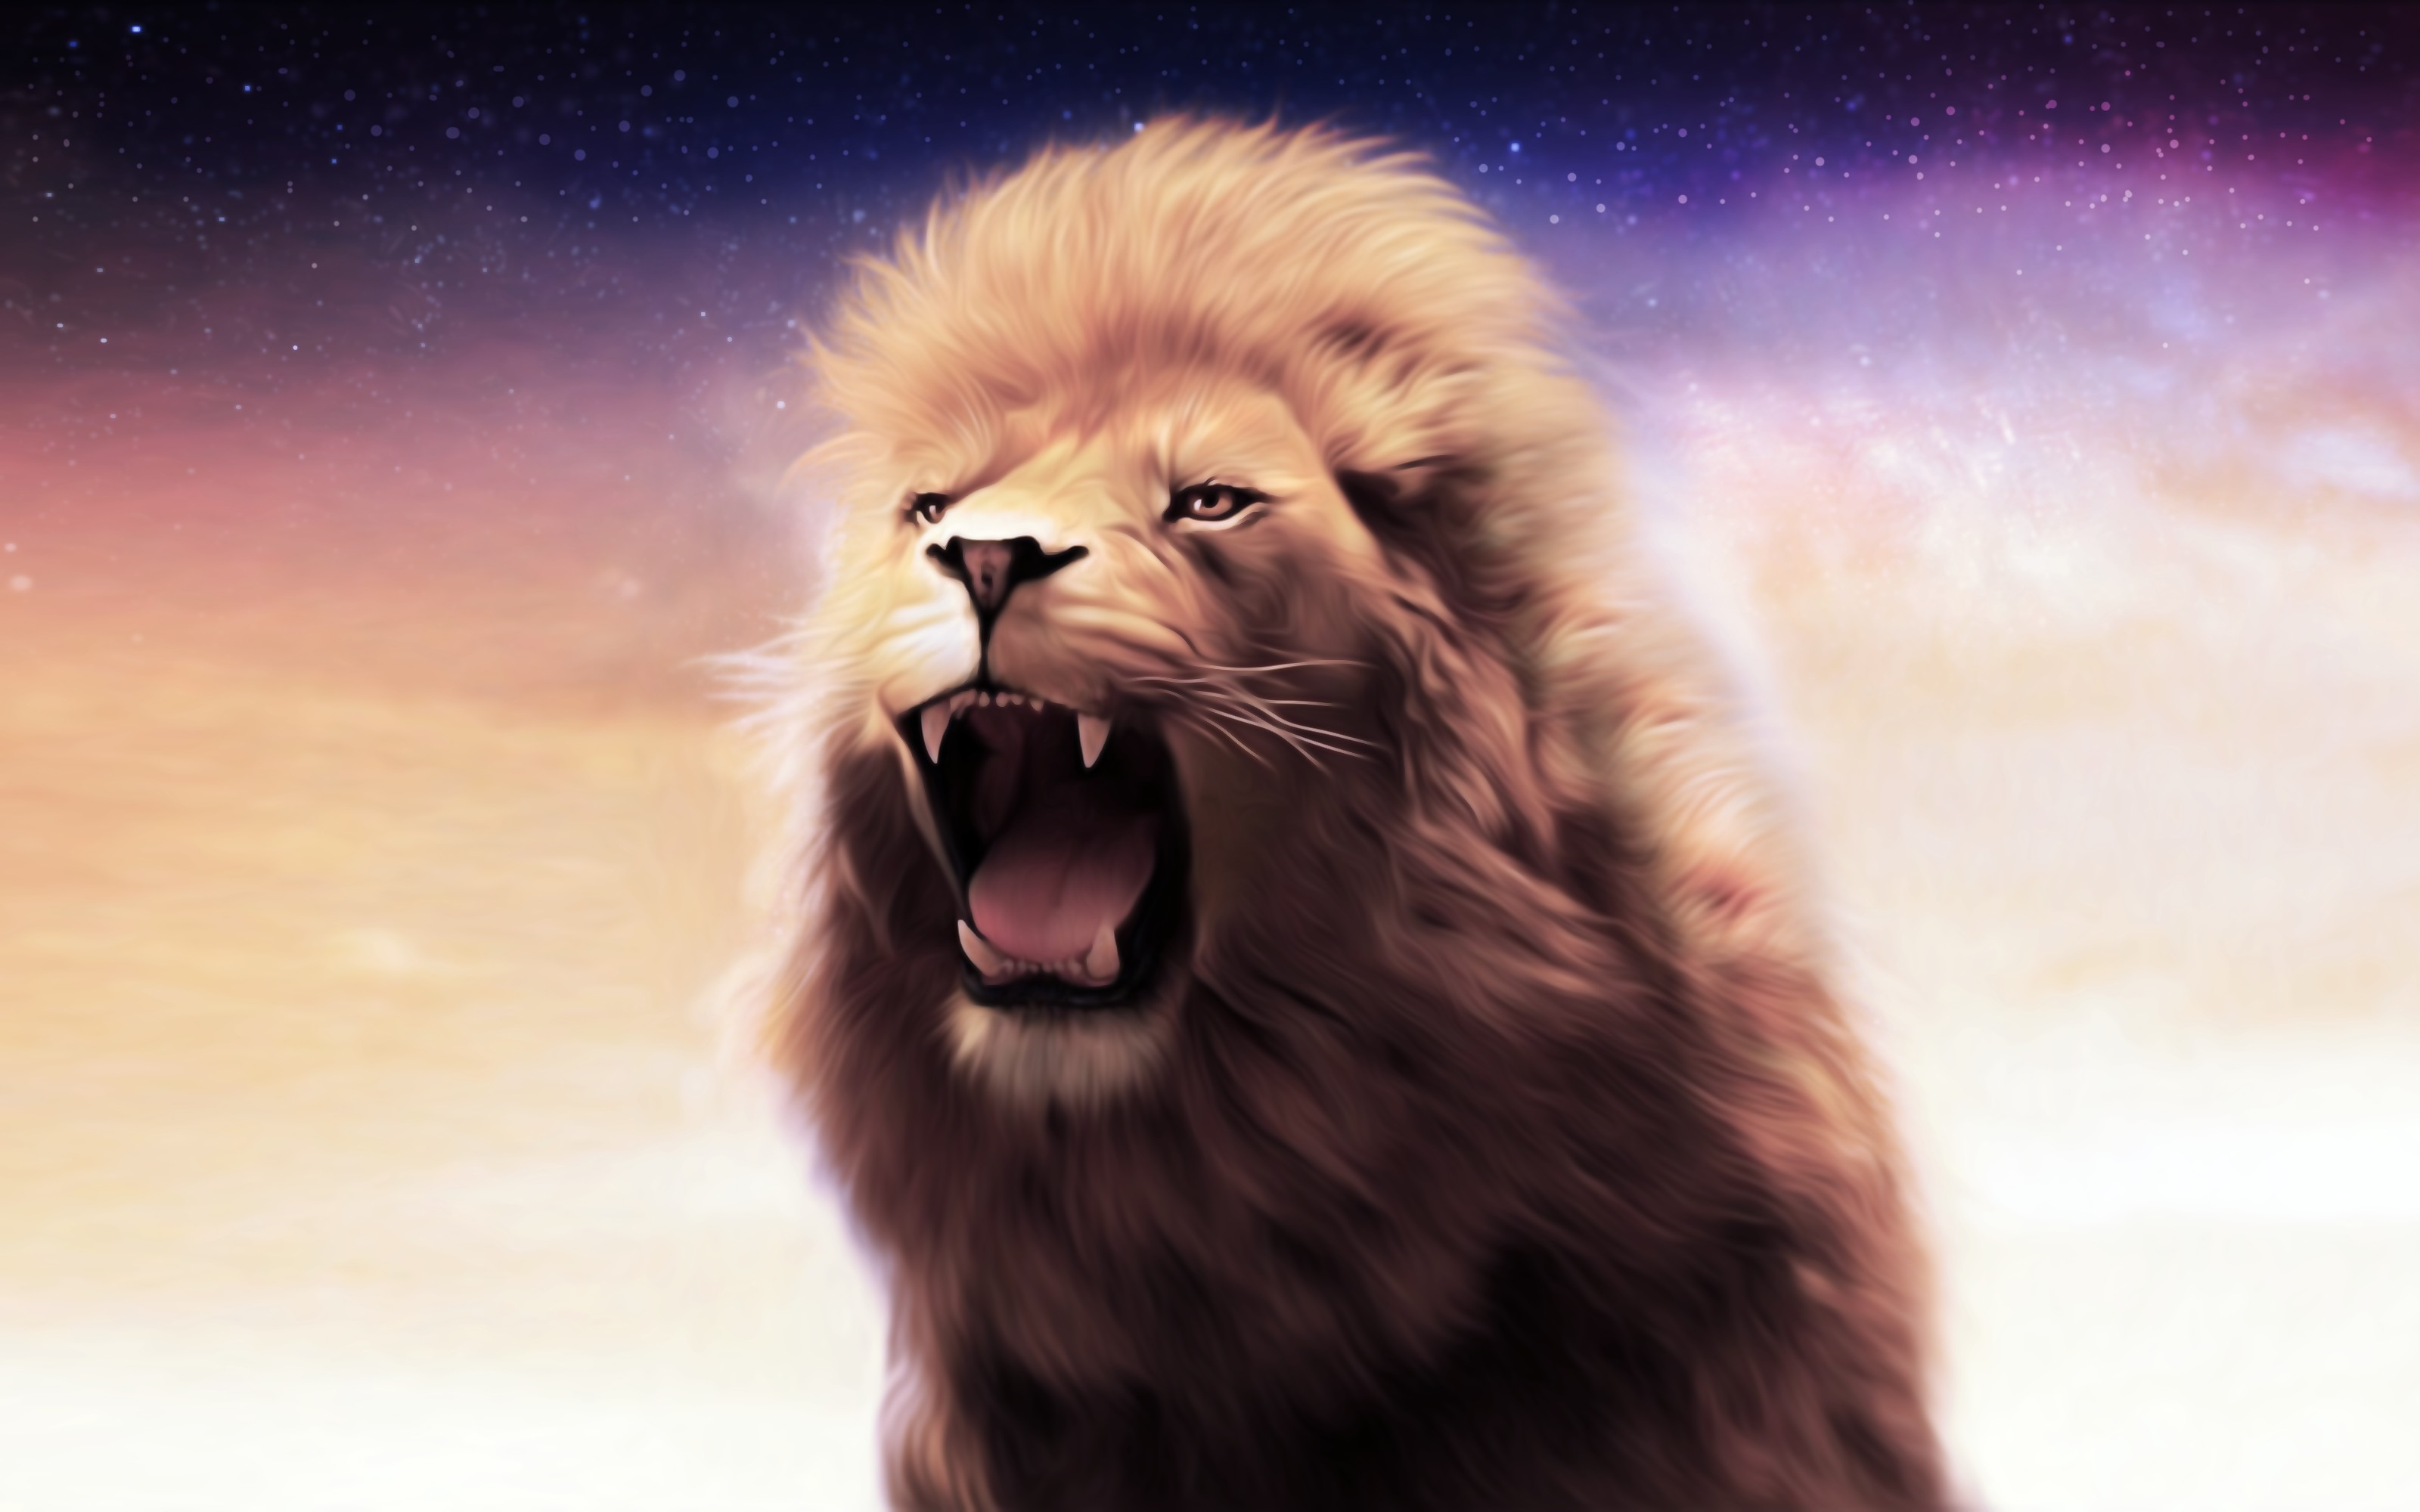 Res: 3200x2000, Roaring Lion Wallpaper Images TheCelebrityPix